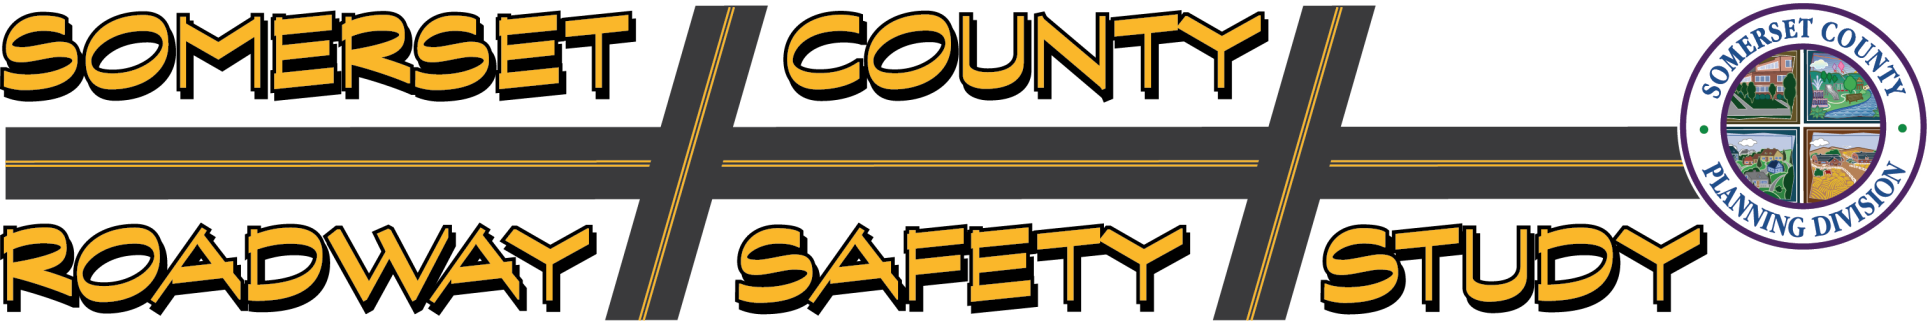 Roadway Corridor Safety Logo